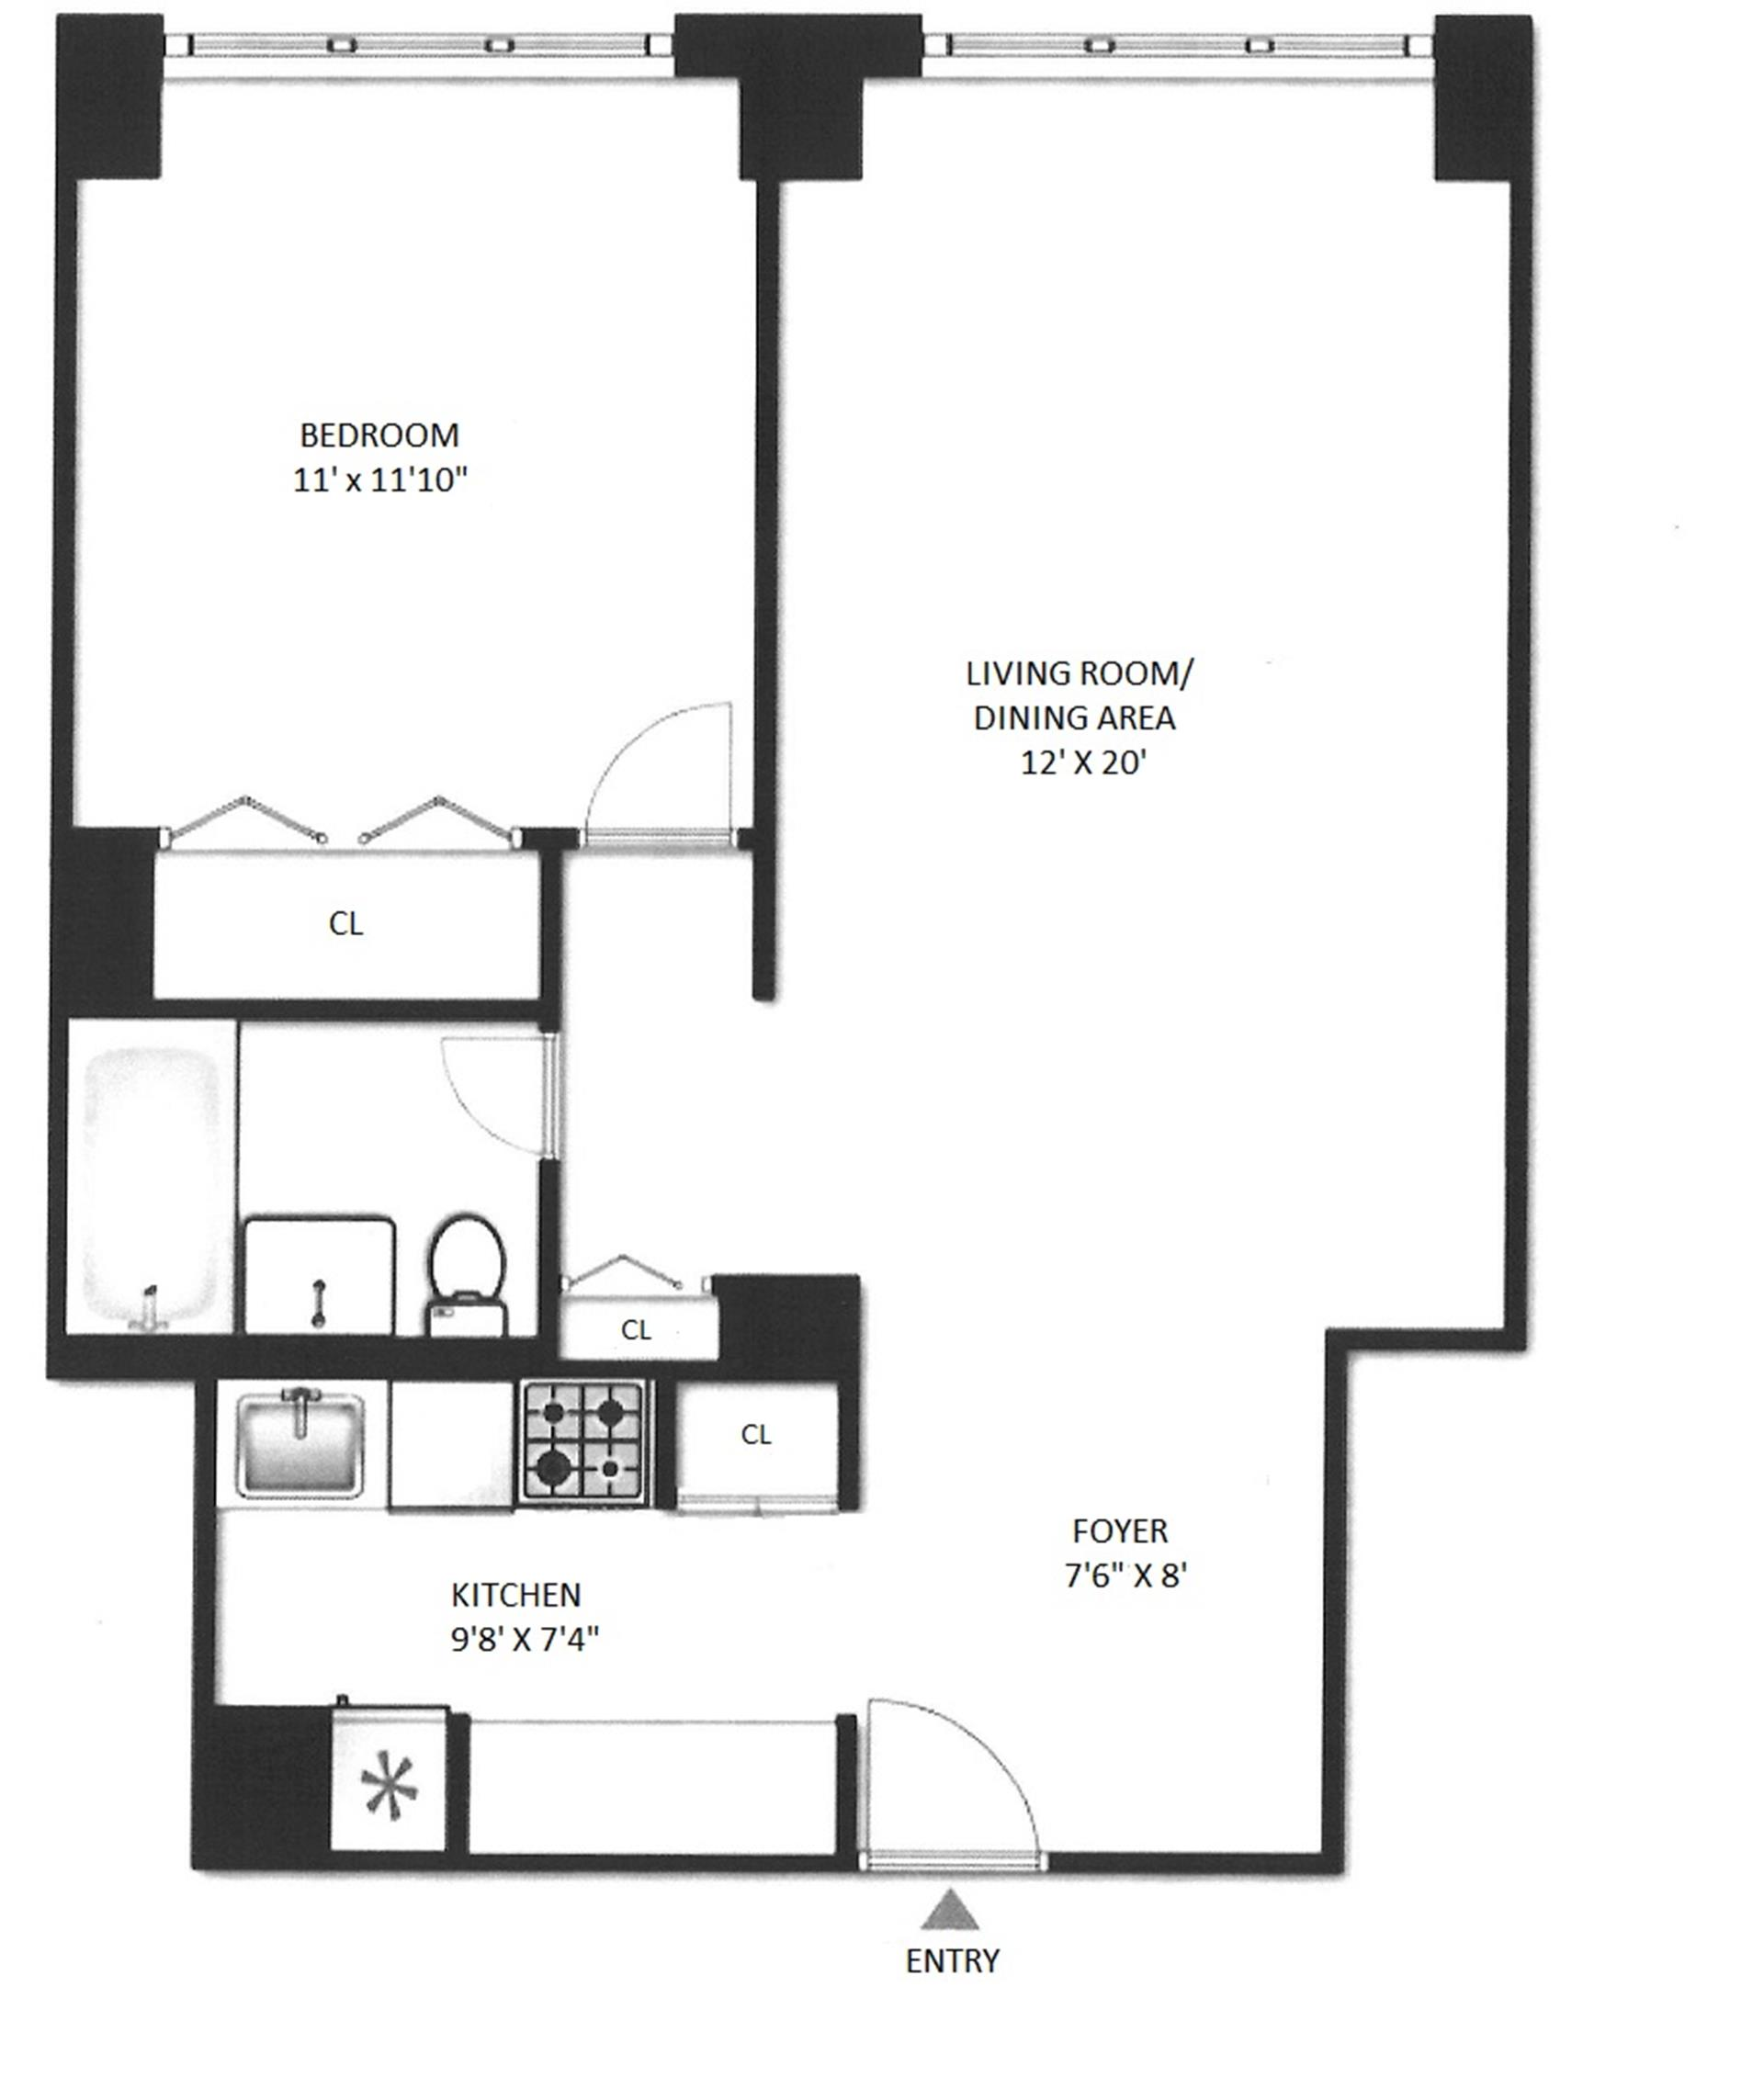 Floor plan of 201 East 17th St, 14E - Gramercy - Union Square, New York